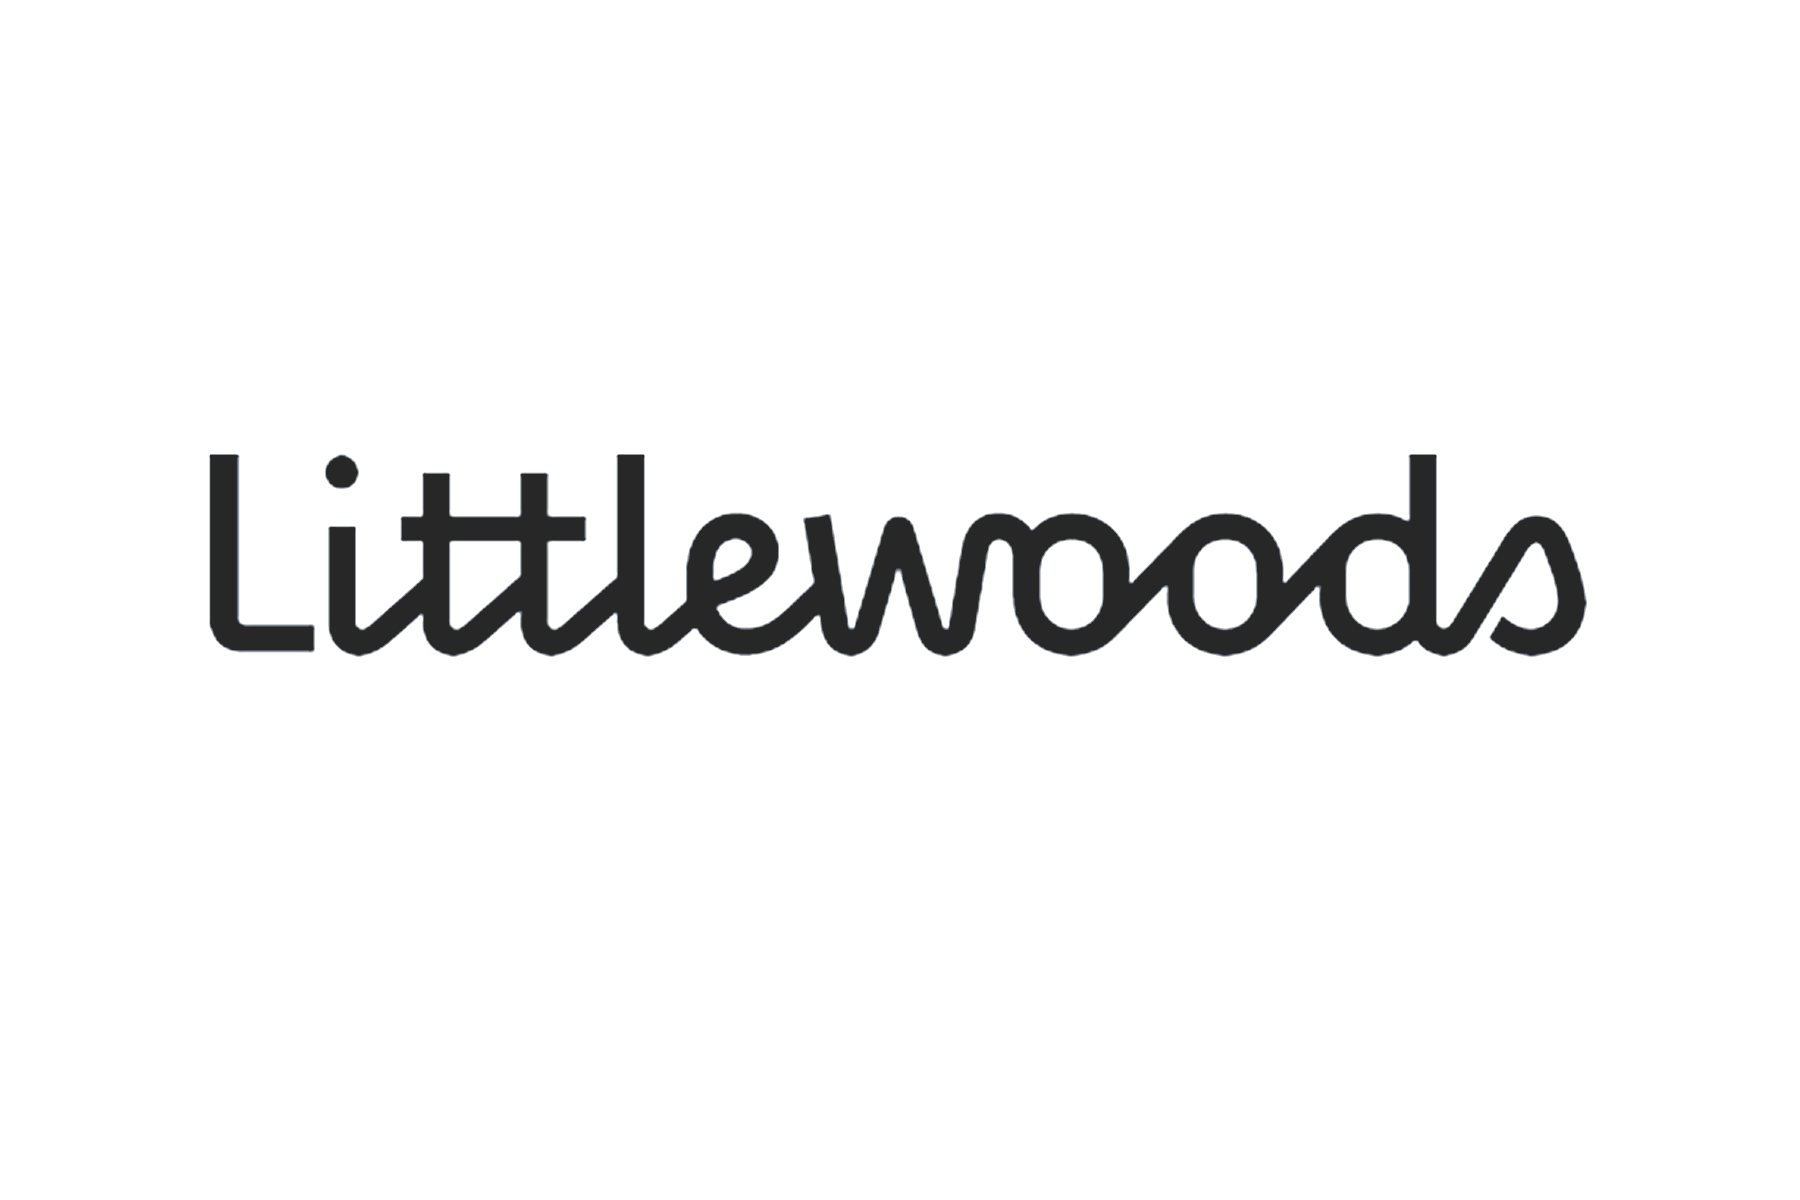 dundas-communications-littlewoods-FI.jpg